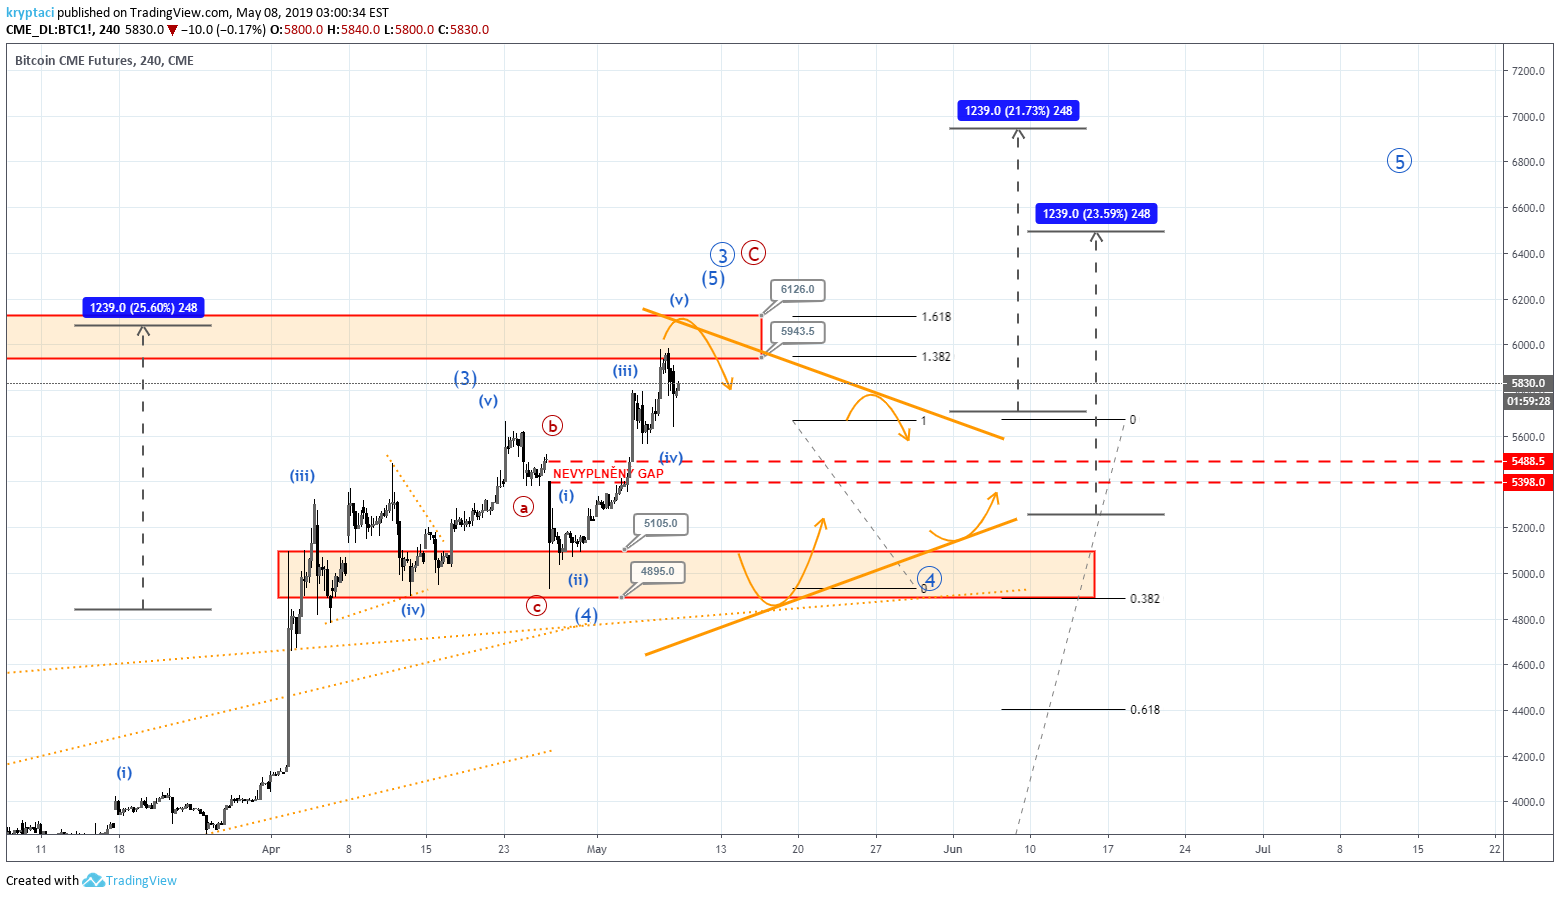 Btc Cme Futures For Cme Btc1 By Fpf Daily Update Tradingview